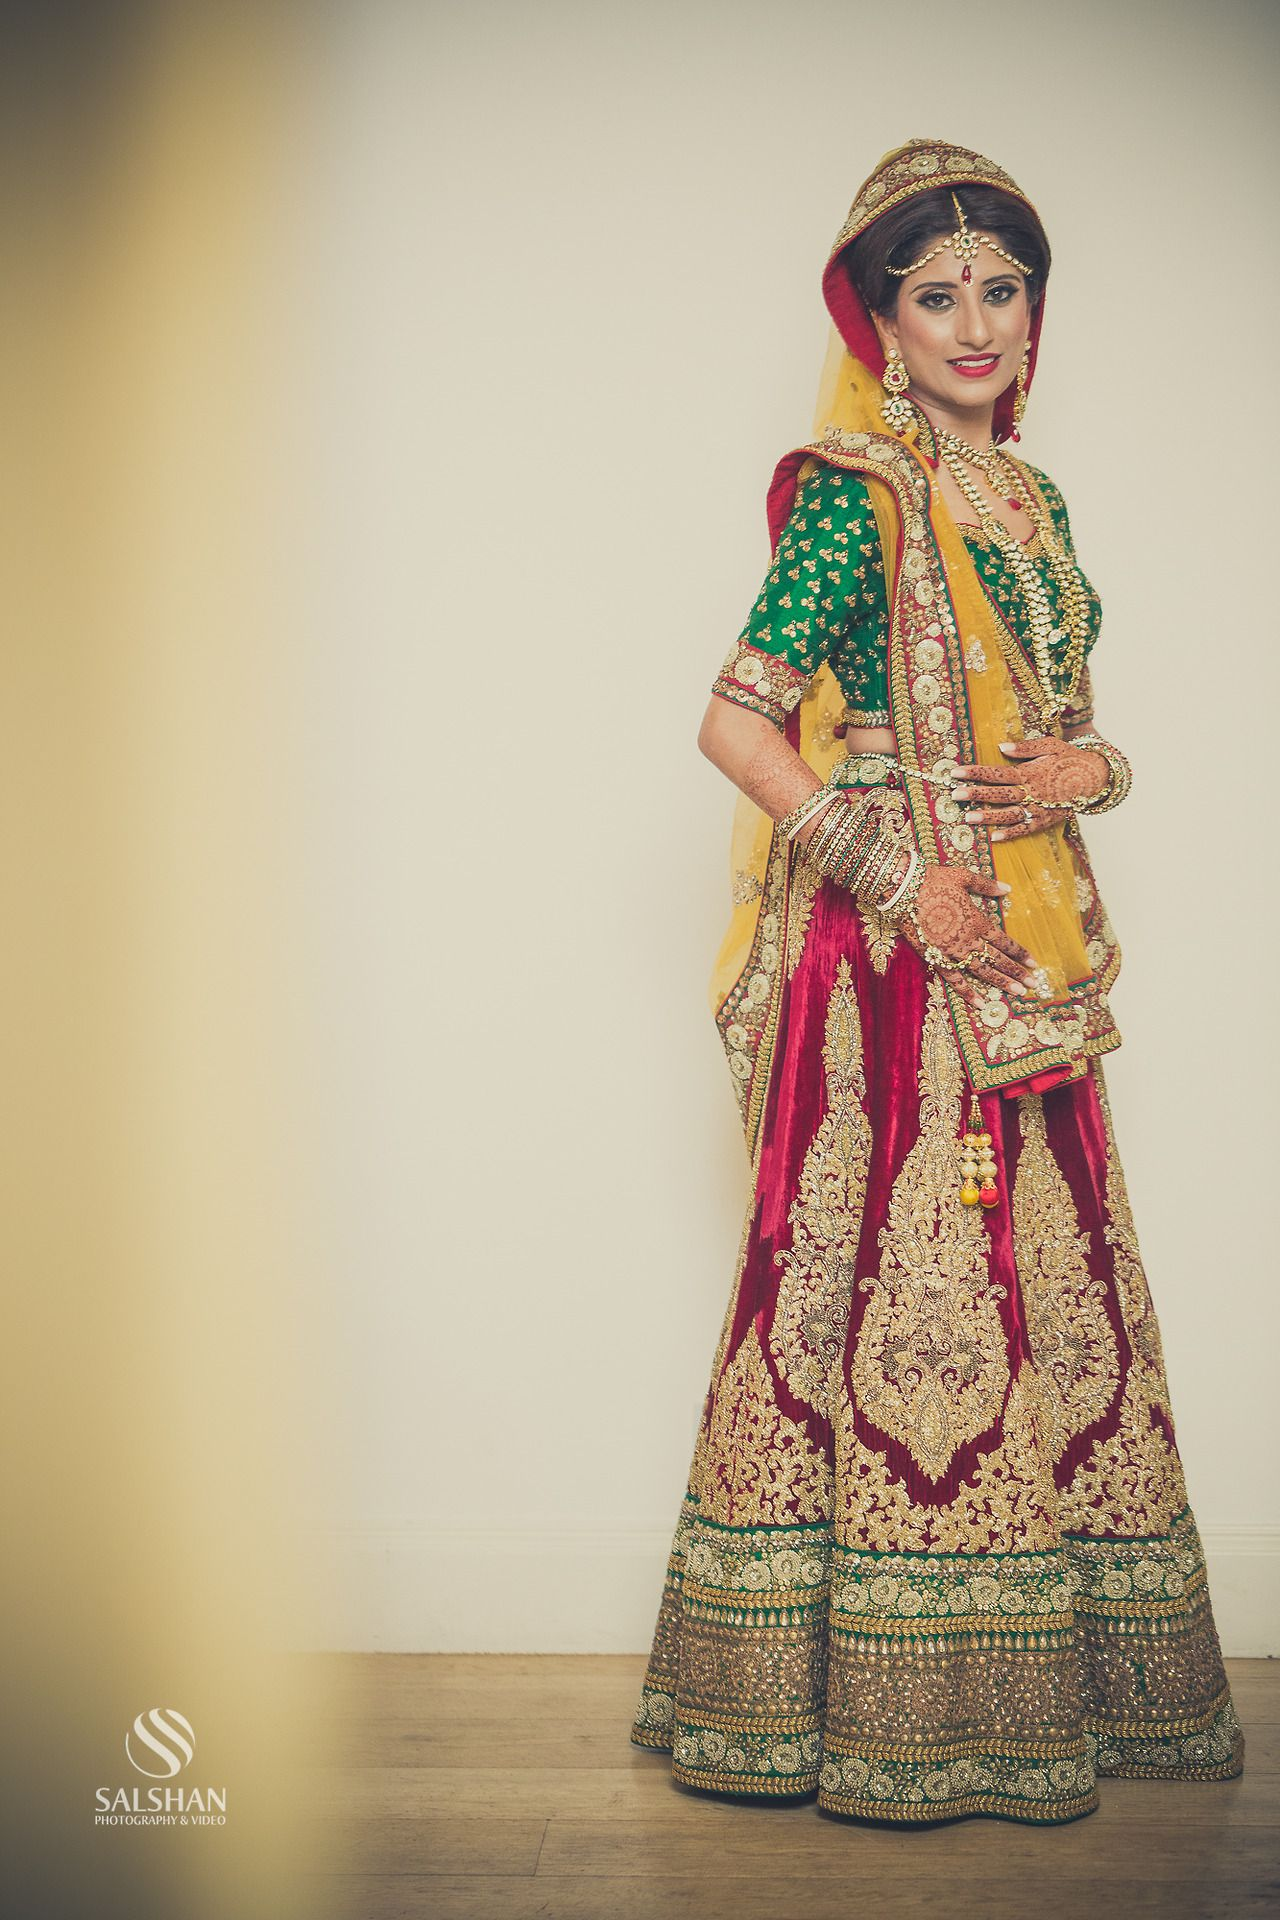 Indian wedding photography. Bridal photo shoot ideas. Indian bride ...